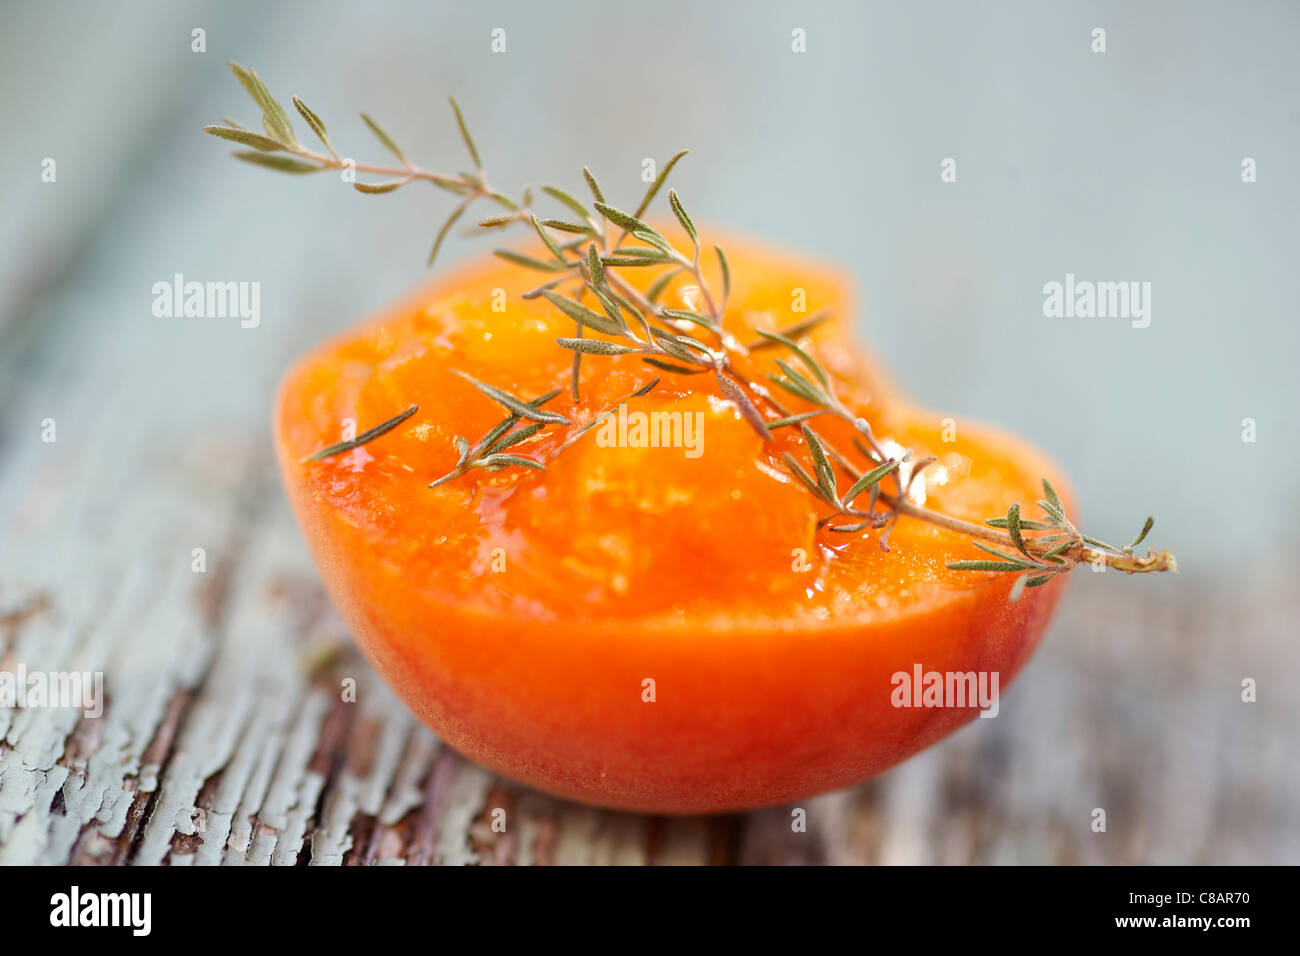 Half an apricot and rosemary - Stock Image